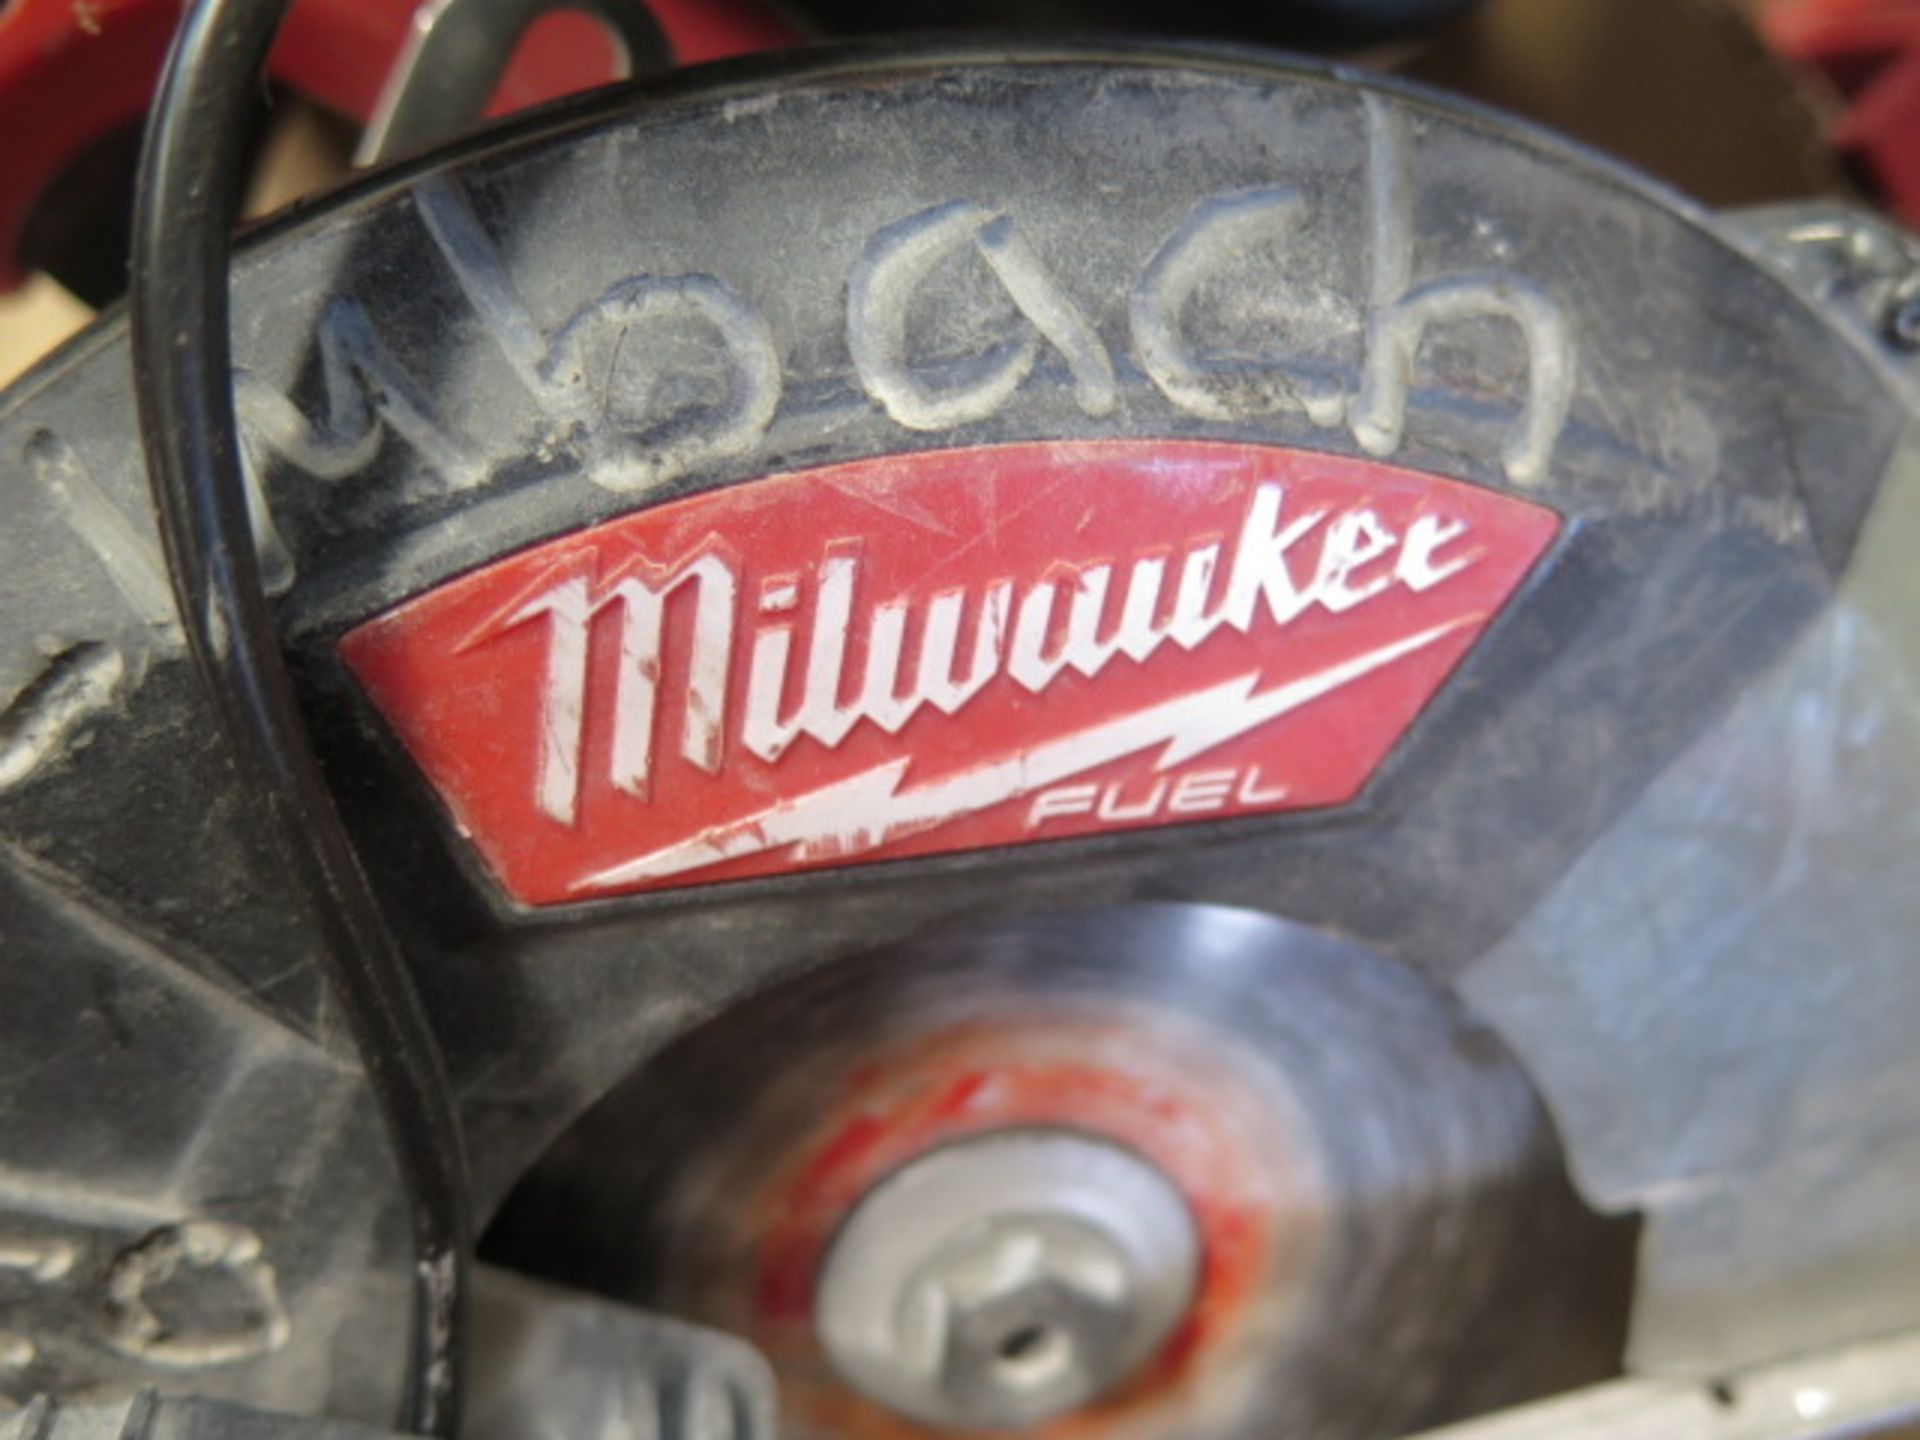 Milwaukee 18 Volt Circular Saws (3) (SOLD AS-IS - NO WARRANTY) - Image 5 of 5